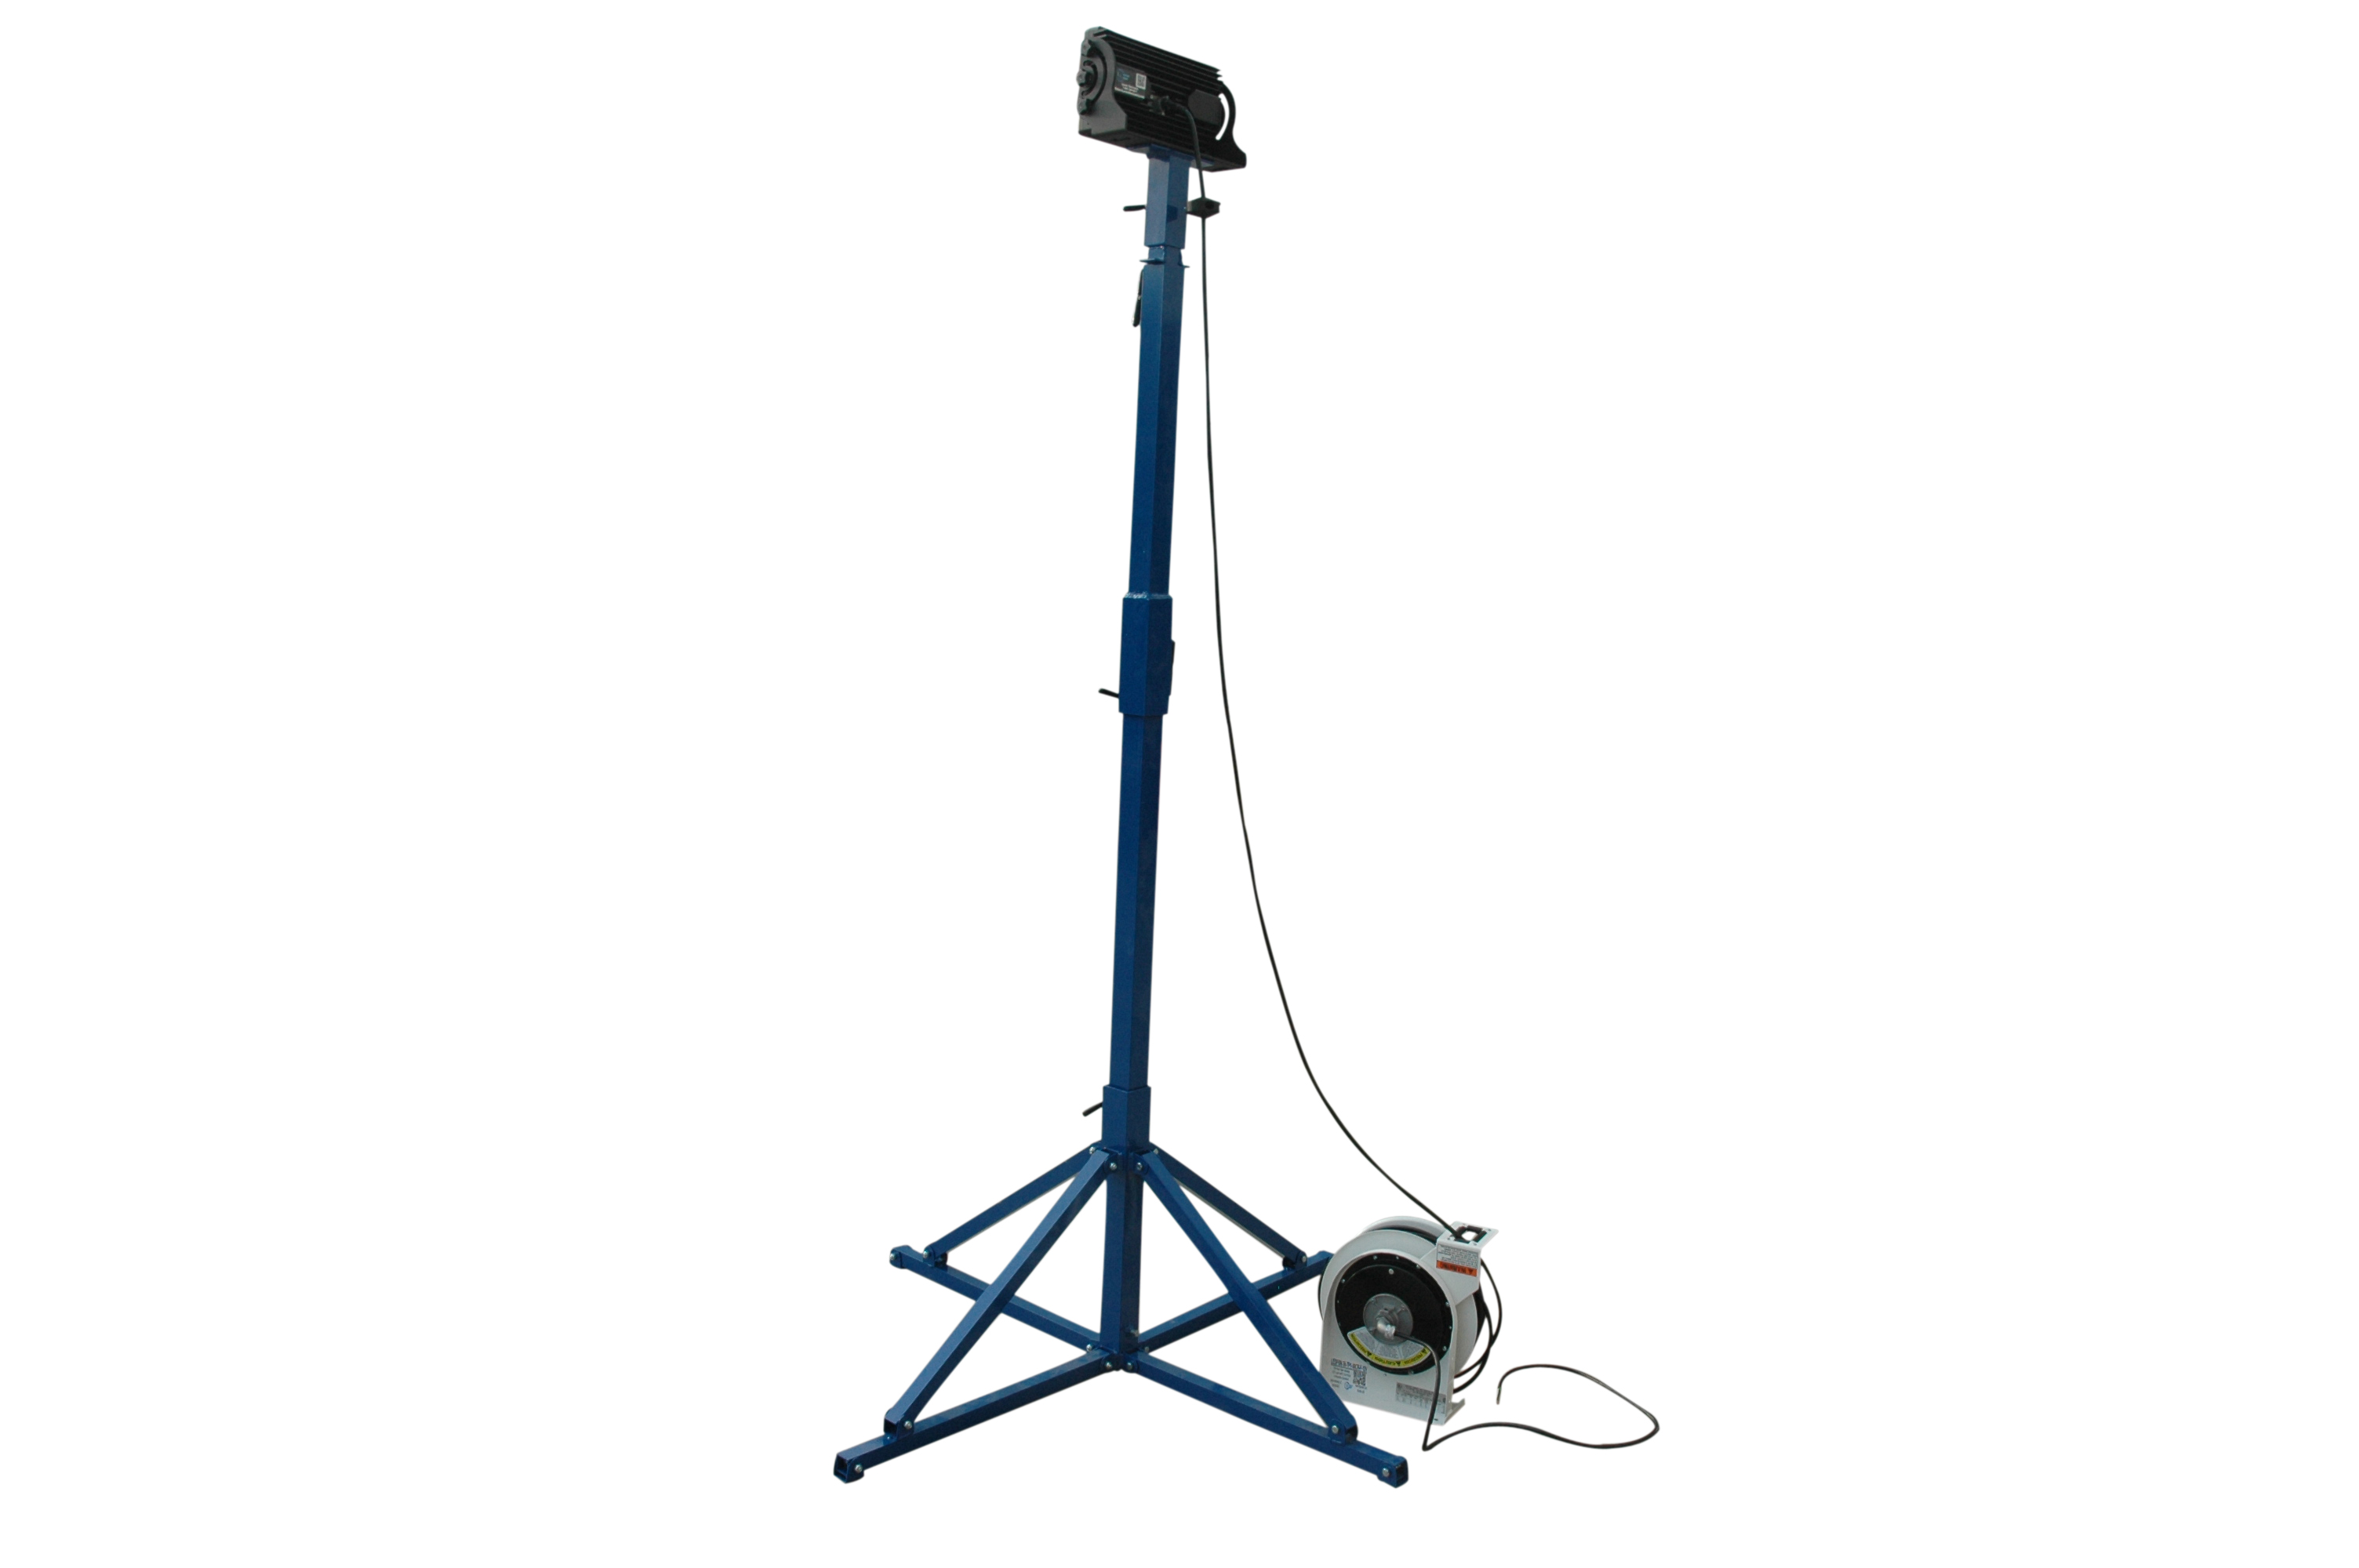 Larson Electronics Releases A High Intensity Led Light With A Cord Reel On Collapsible Quadpod